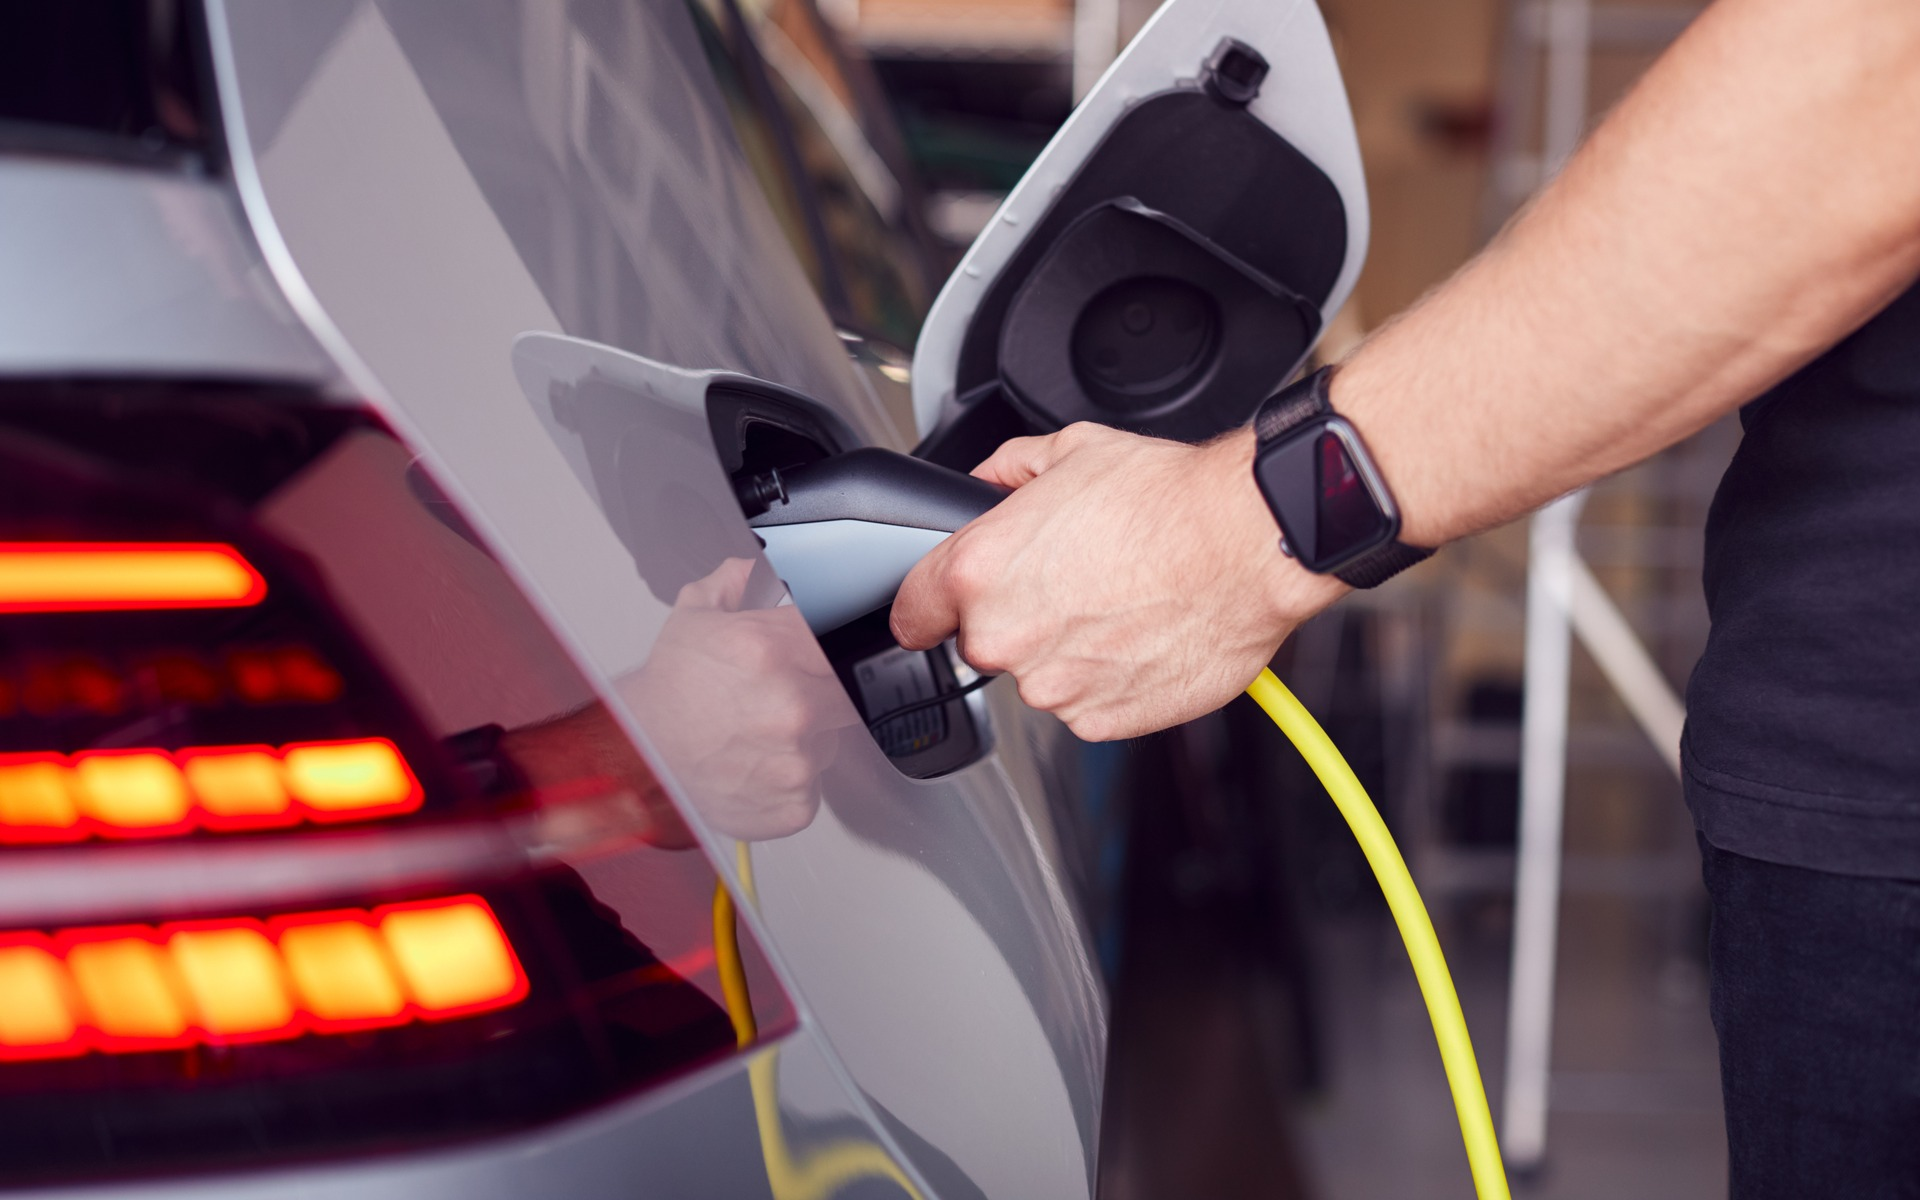 Researchers Successfully Charge An Electric Car In 10